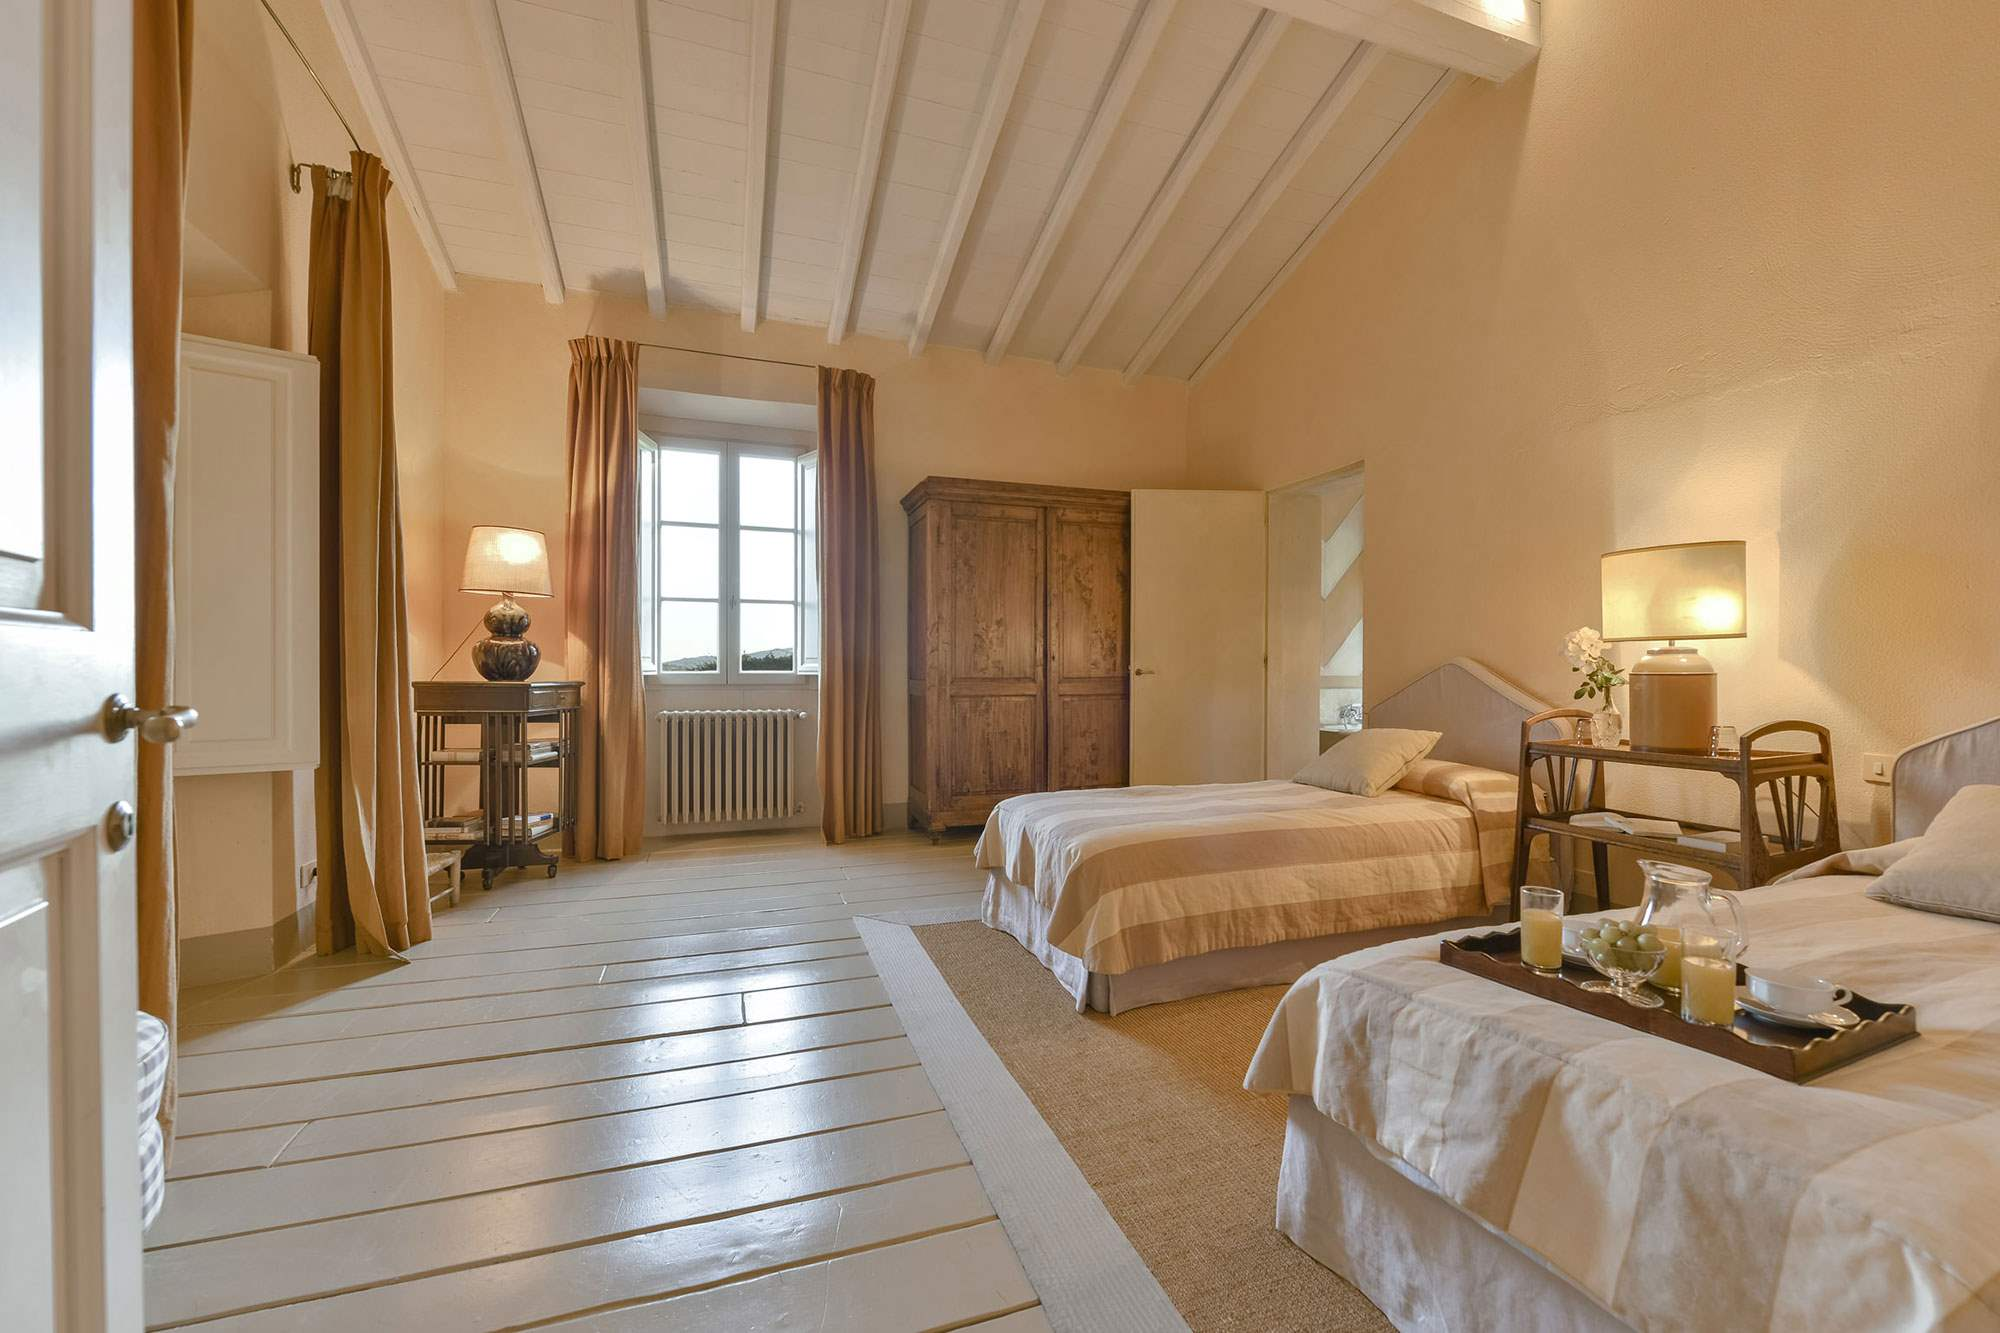 Villa Maremma 1, 7 bedroom villa in South Tuscany - Maremma, Tuscany Photo #38